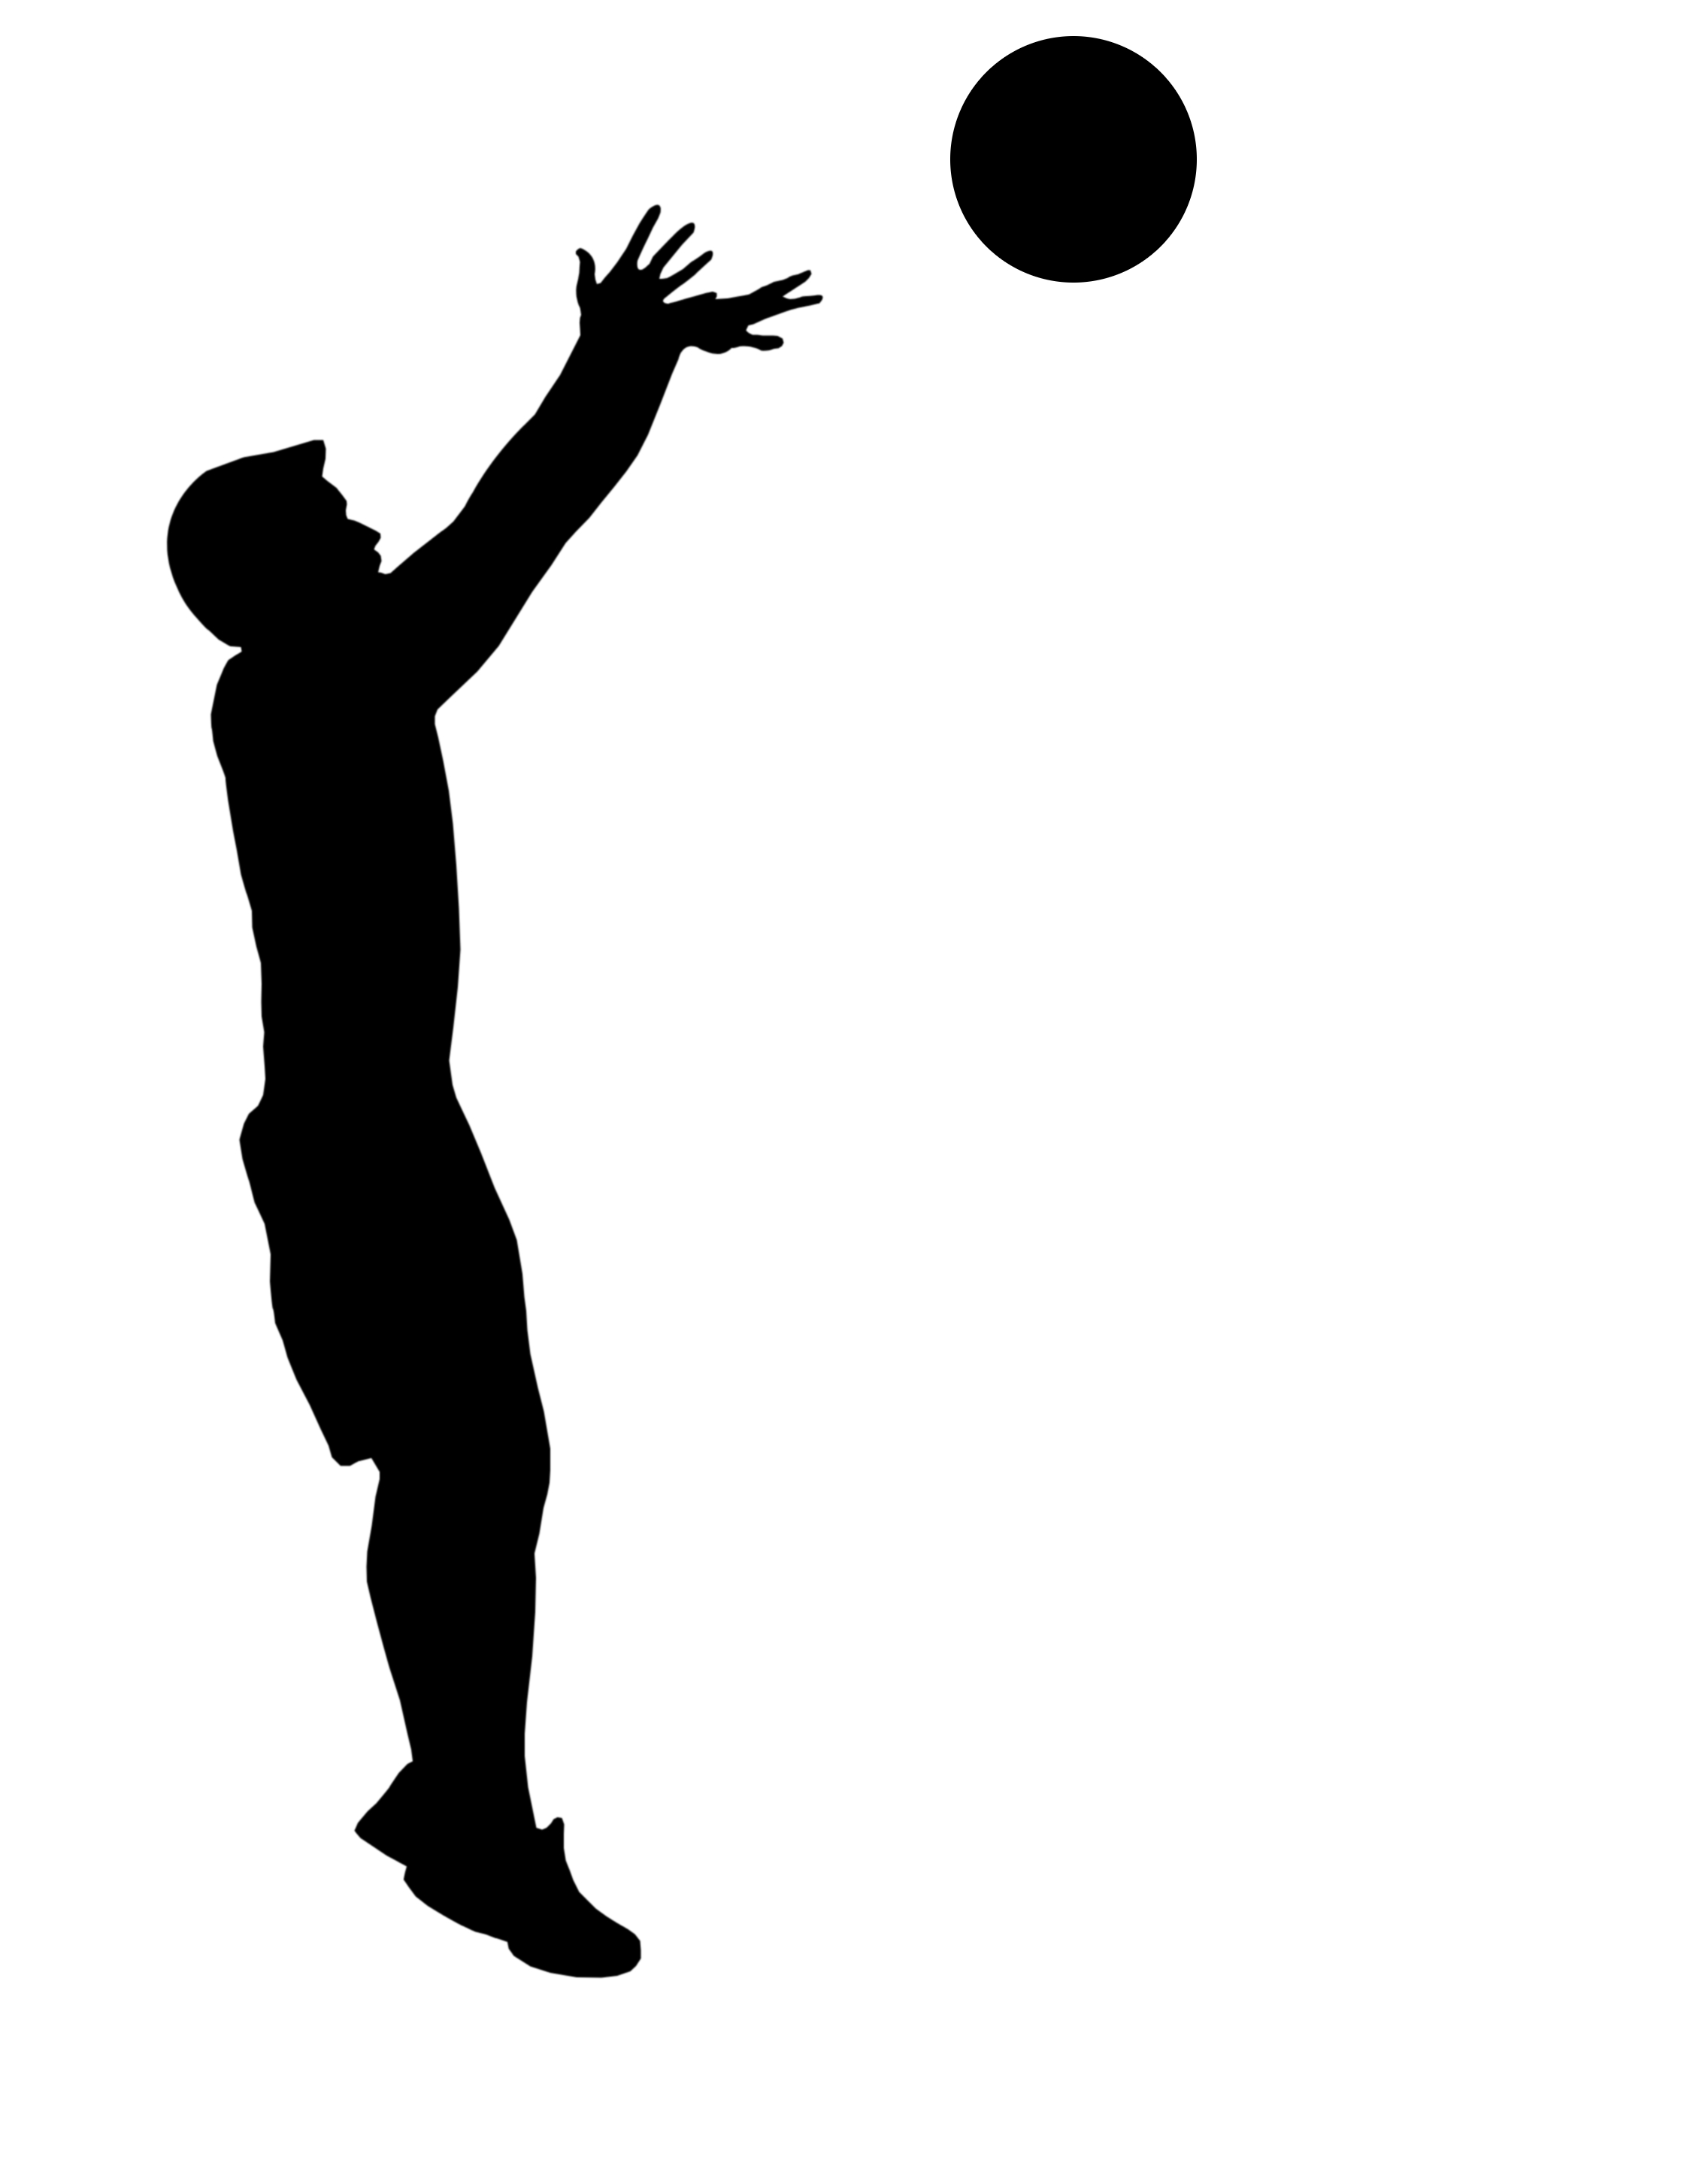 How to draw someone shooting a basketball